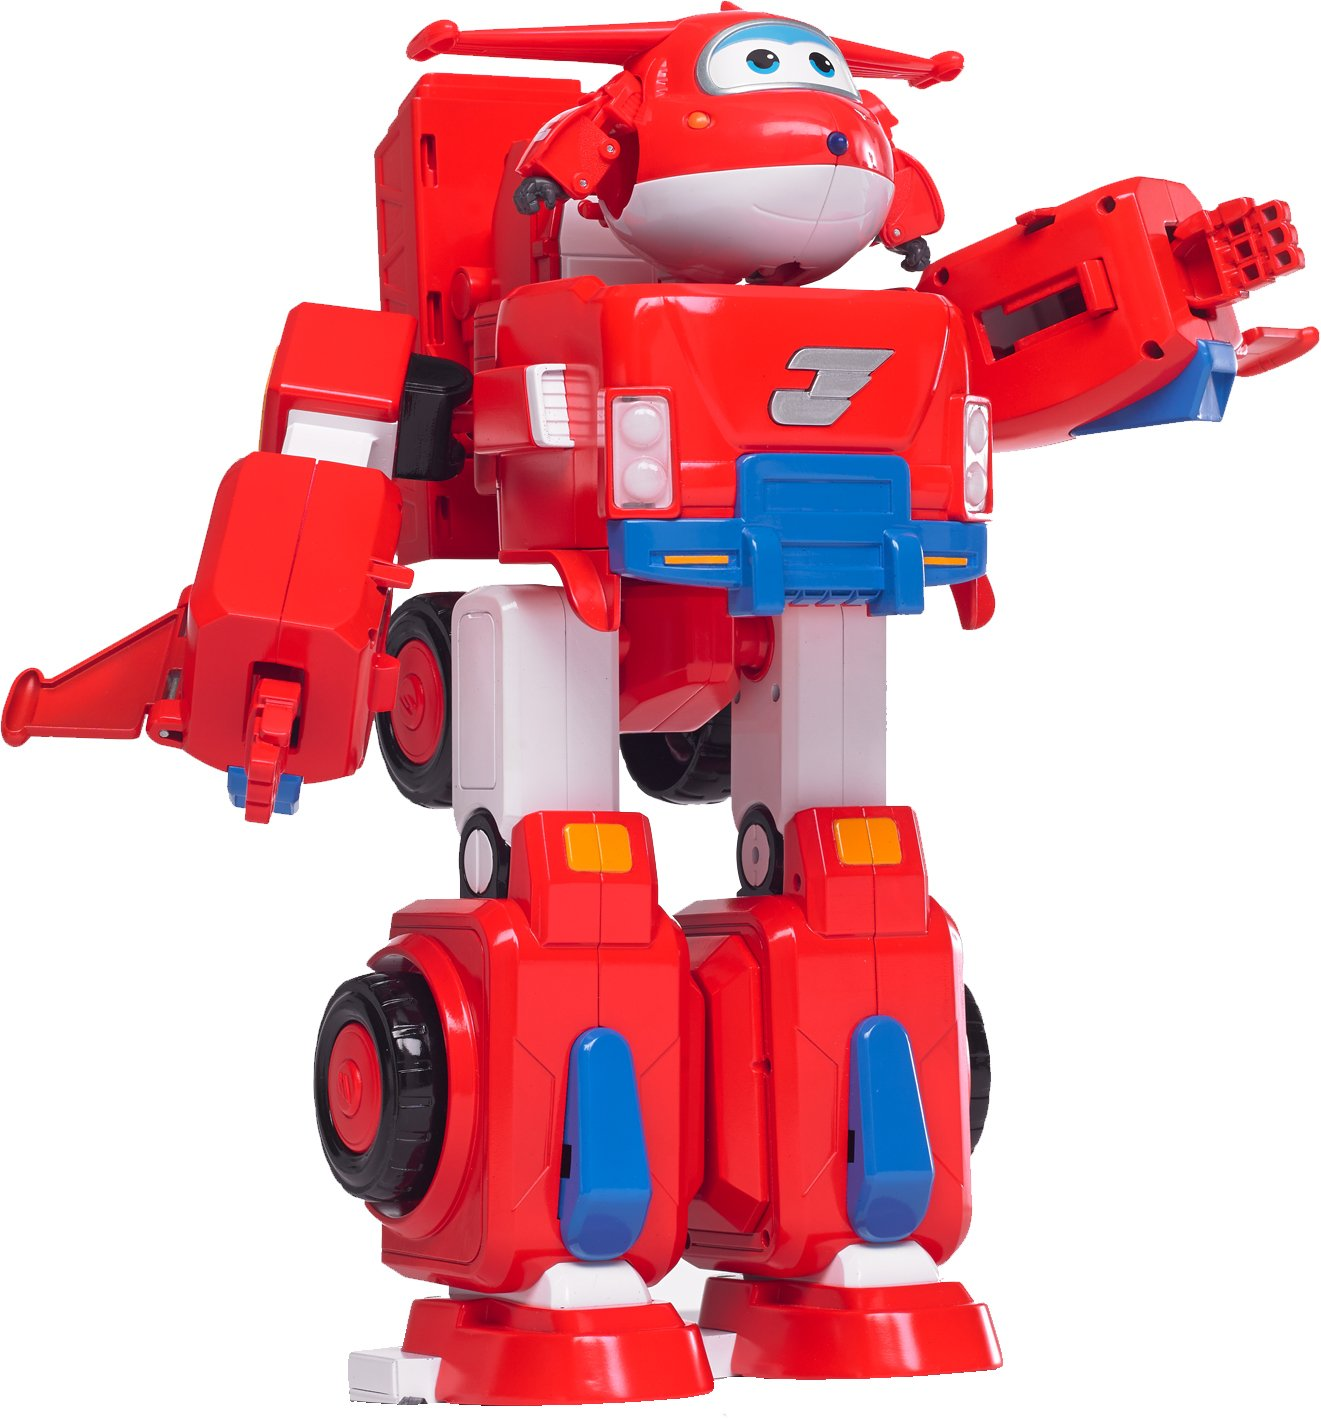 Super Wings - Jett's Super Robot Suit Large Transforming Toy Vehicle | Includes Jett | 5'' Scale by Super Wings - (Image #1)